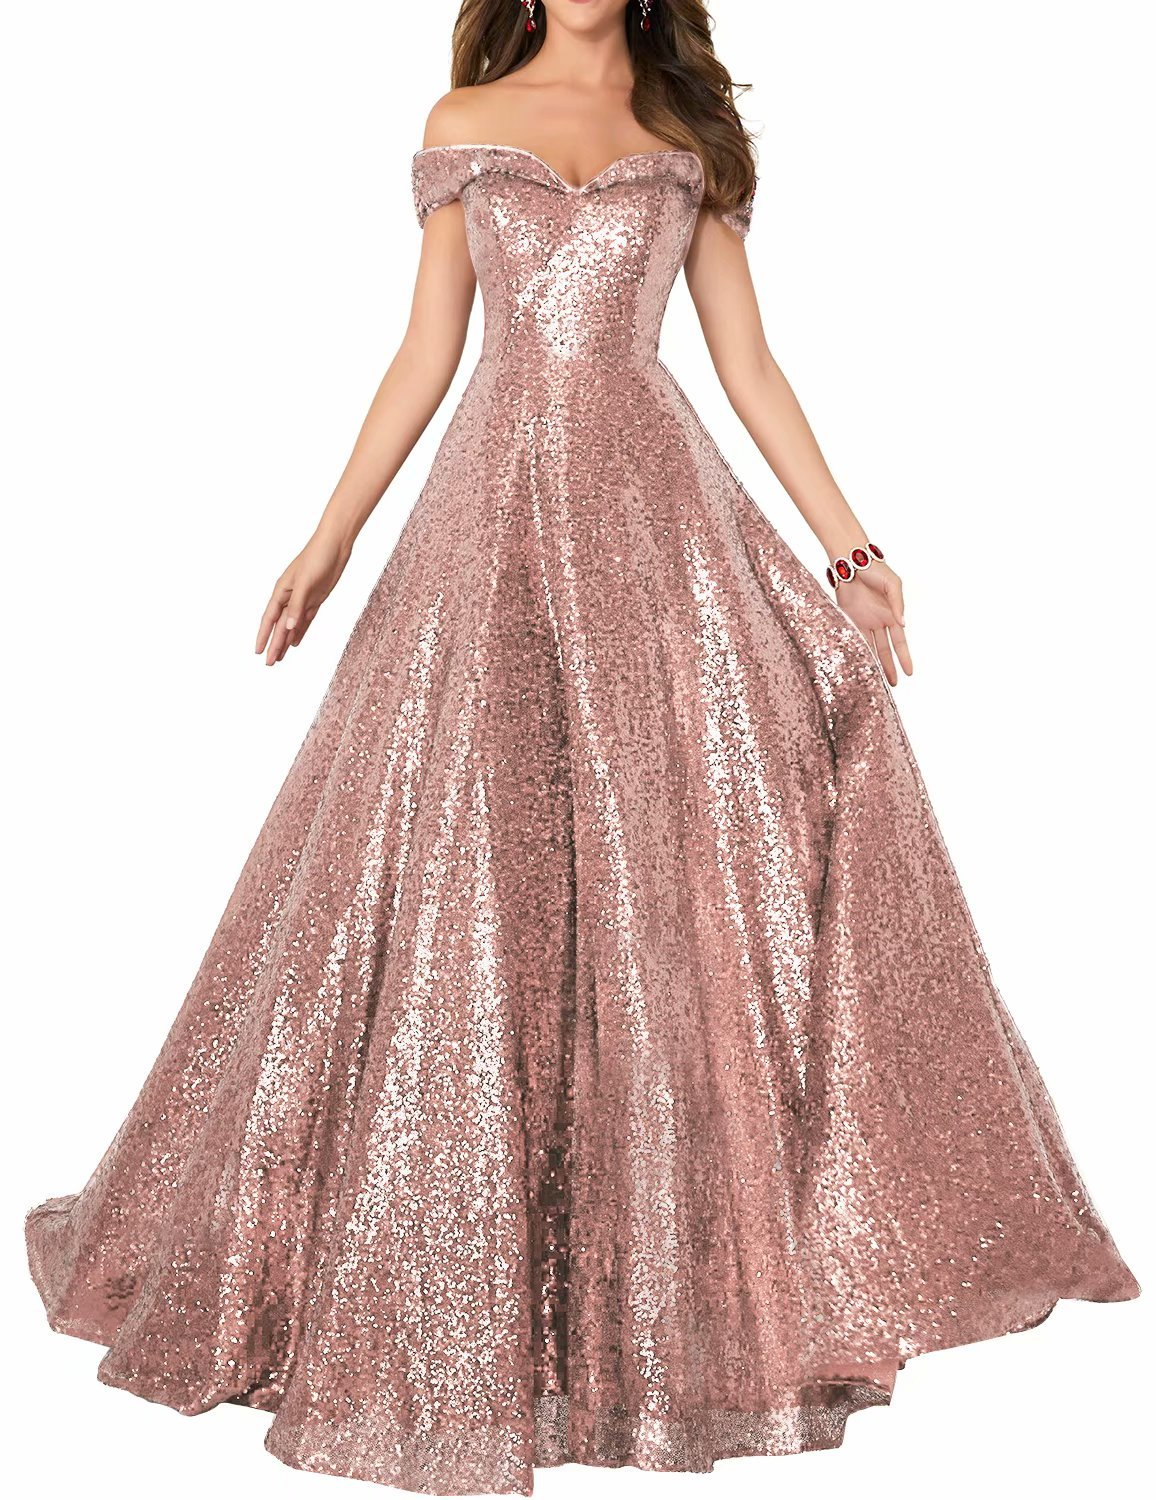 YIRENWANSHA 2018 Off Shoulder Sequined Party Dresses Plus Size Homecoming  Gowns A Line Empire Waist Robes Plus Size Formal Evening Skirts Long  Elegant Gowns ... d912056c2